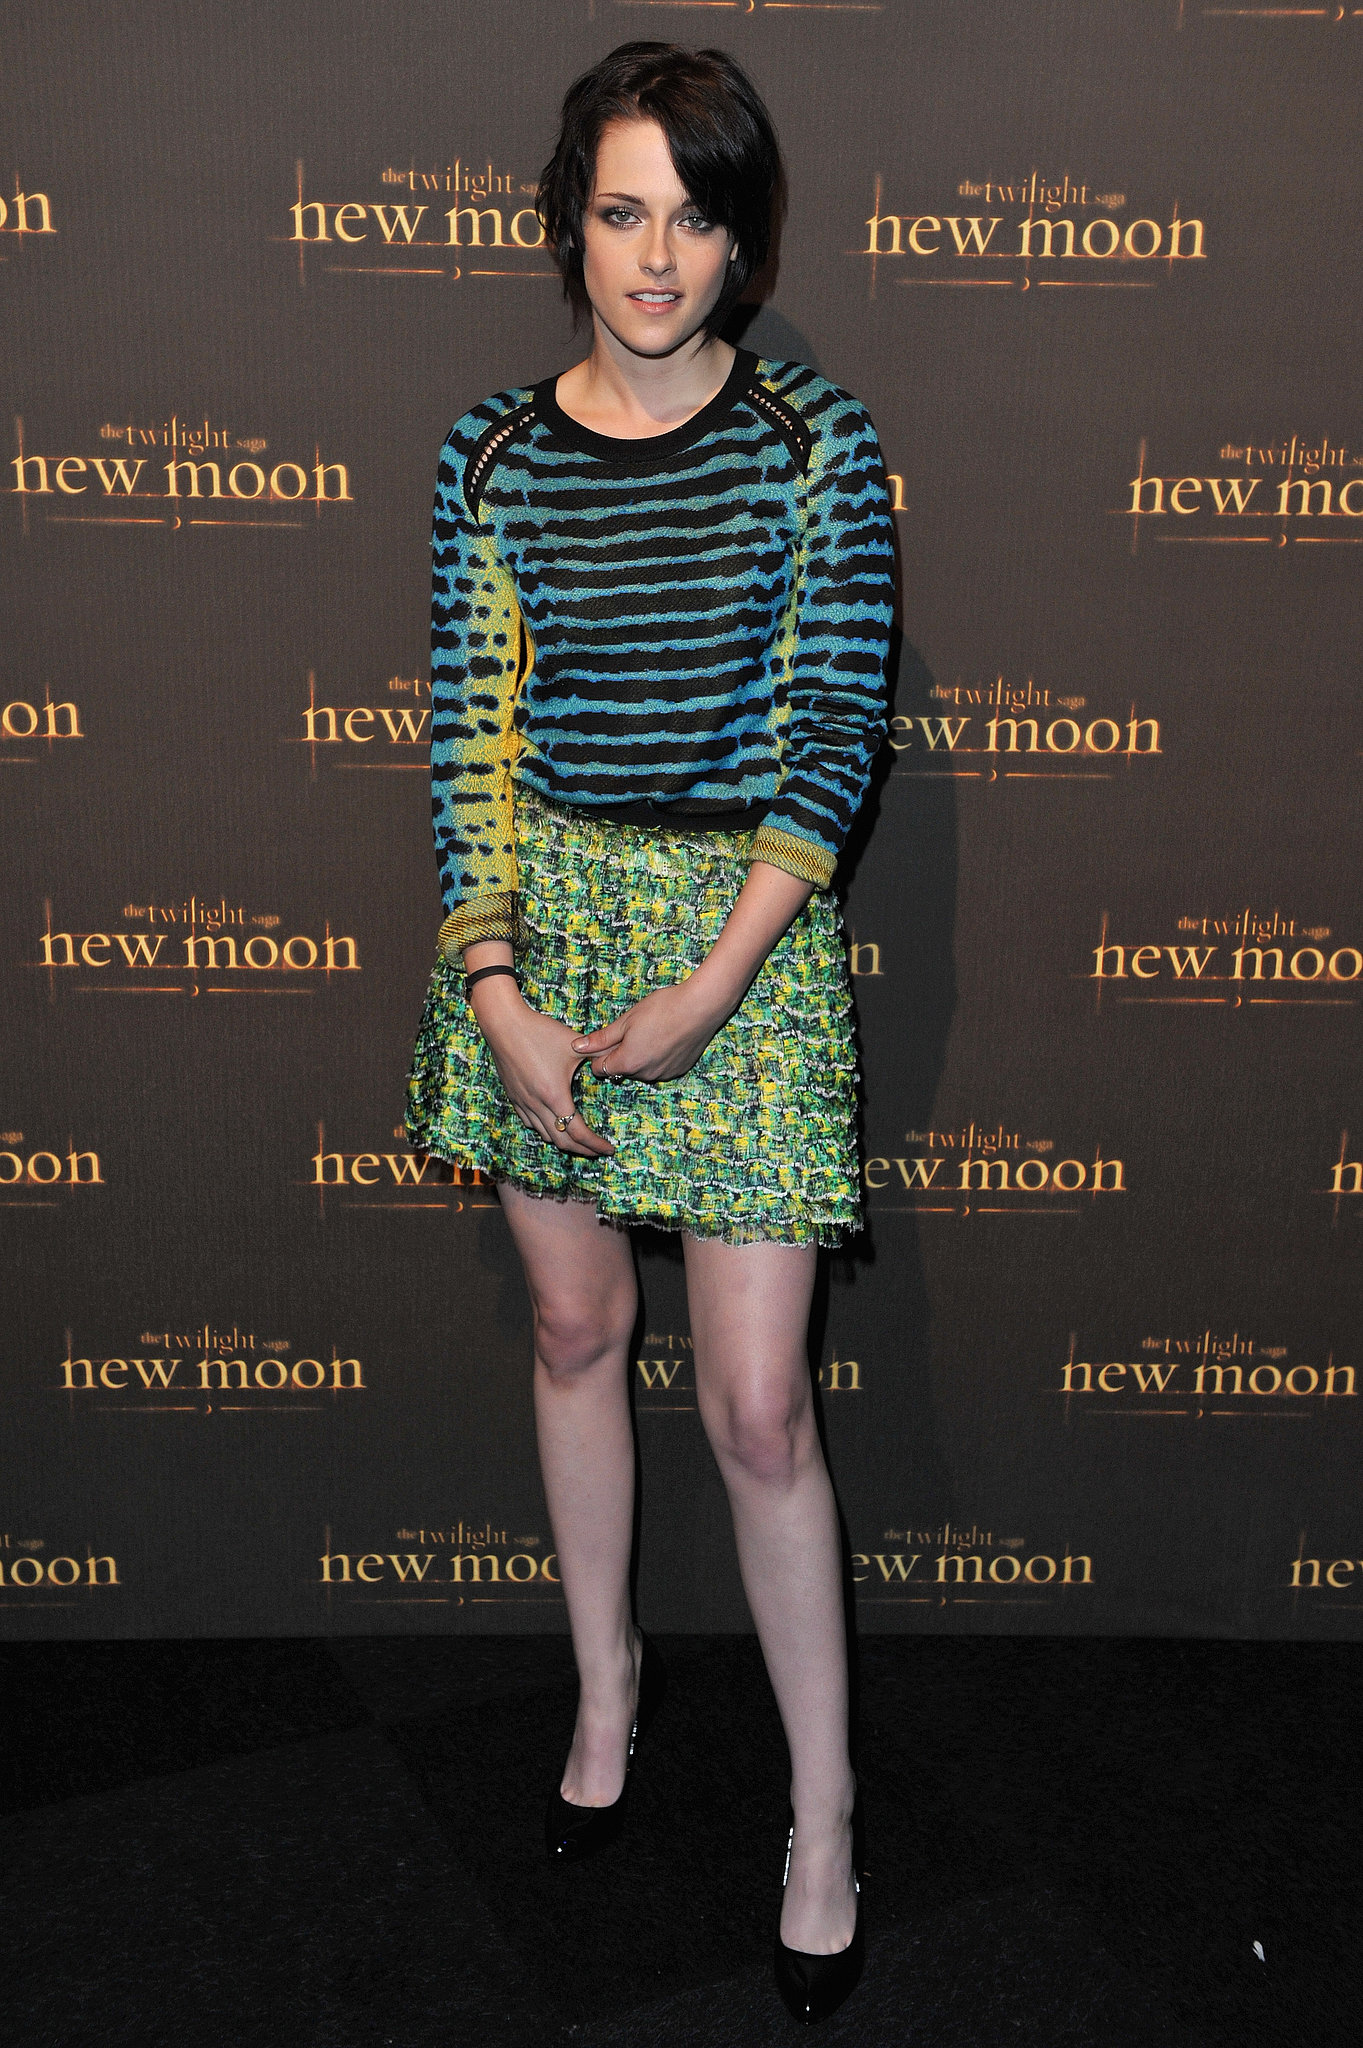 A bright Proenza Schouler pairing hit a fashion home run during a fan event for New Moon in London in November 2009.